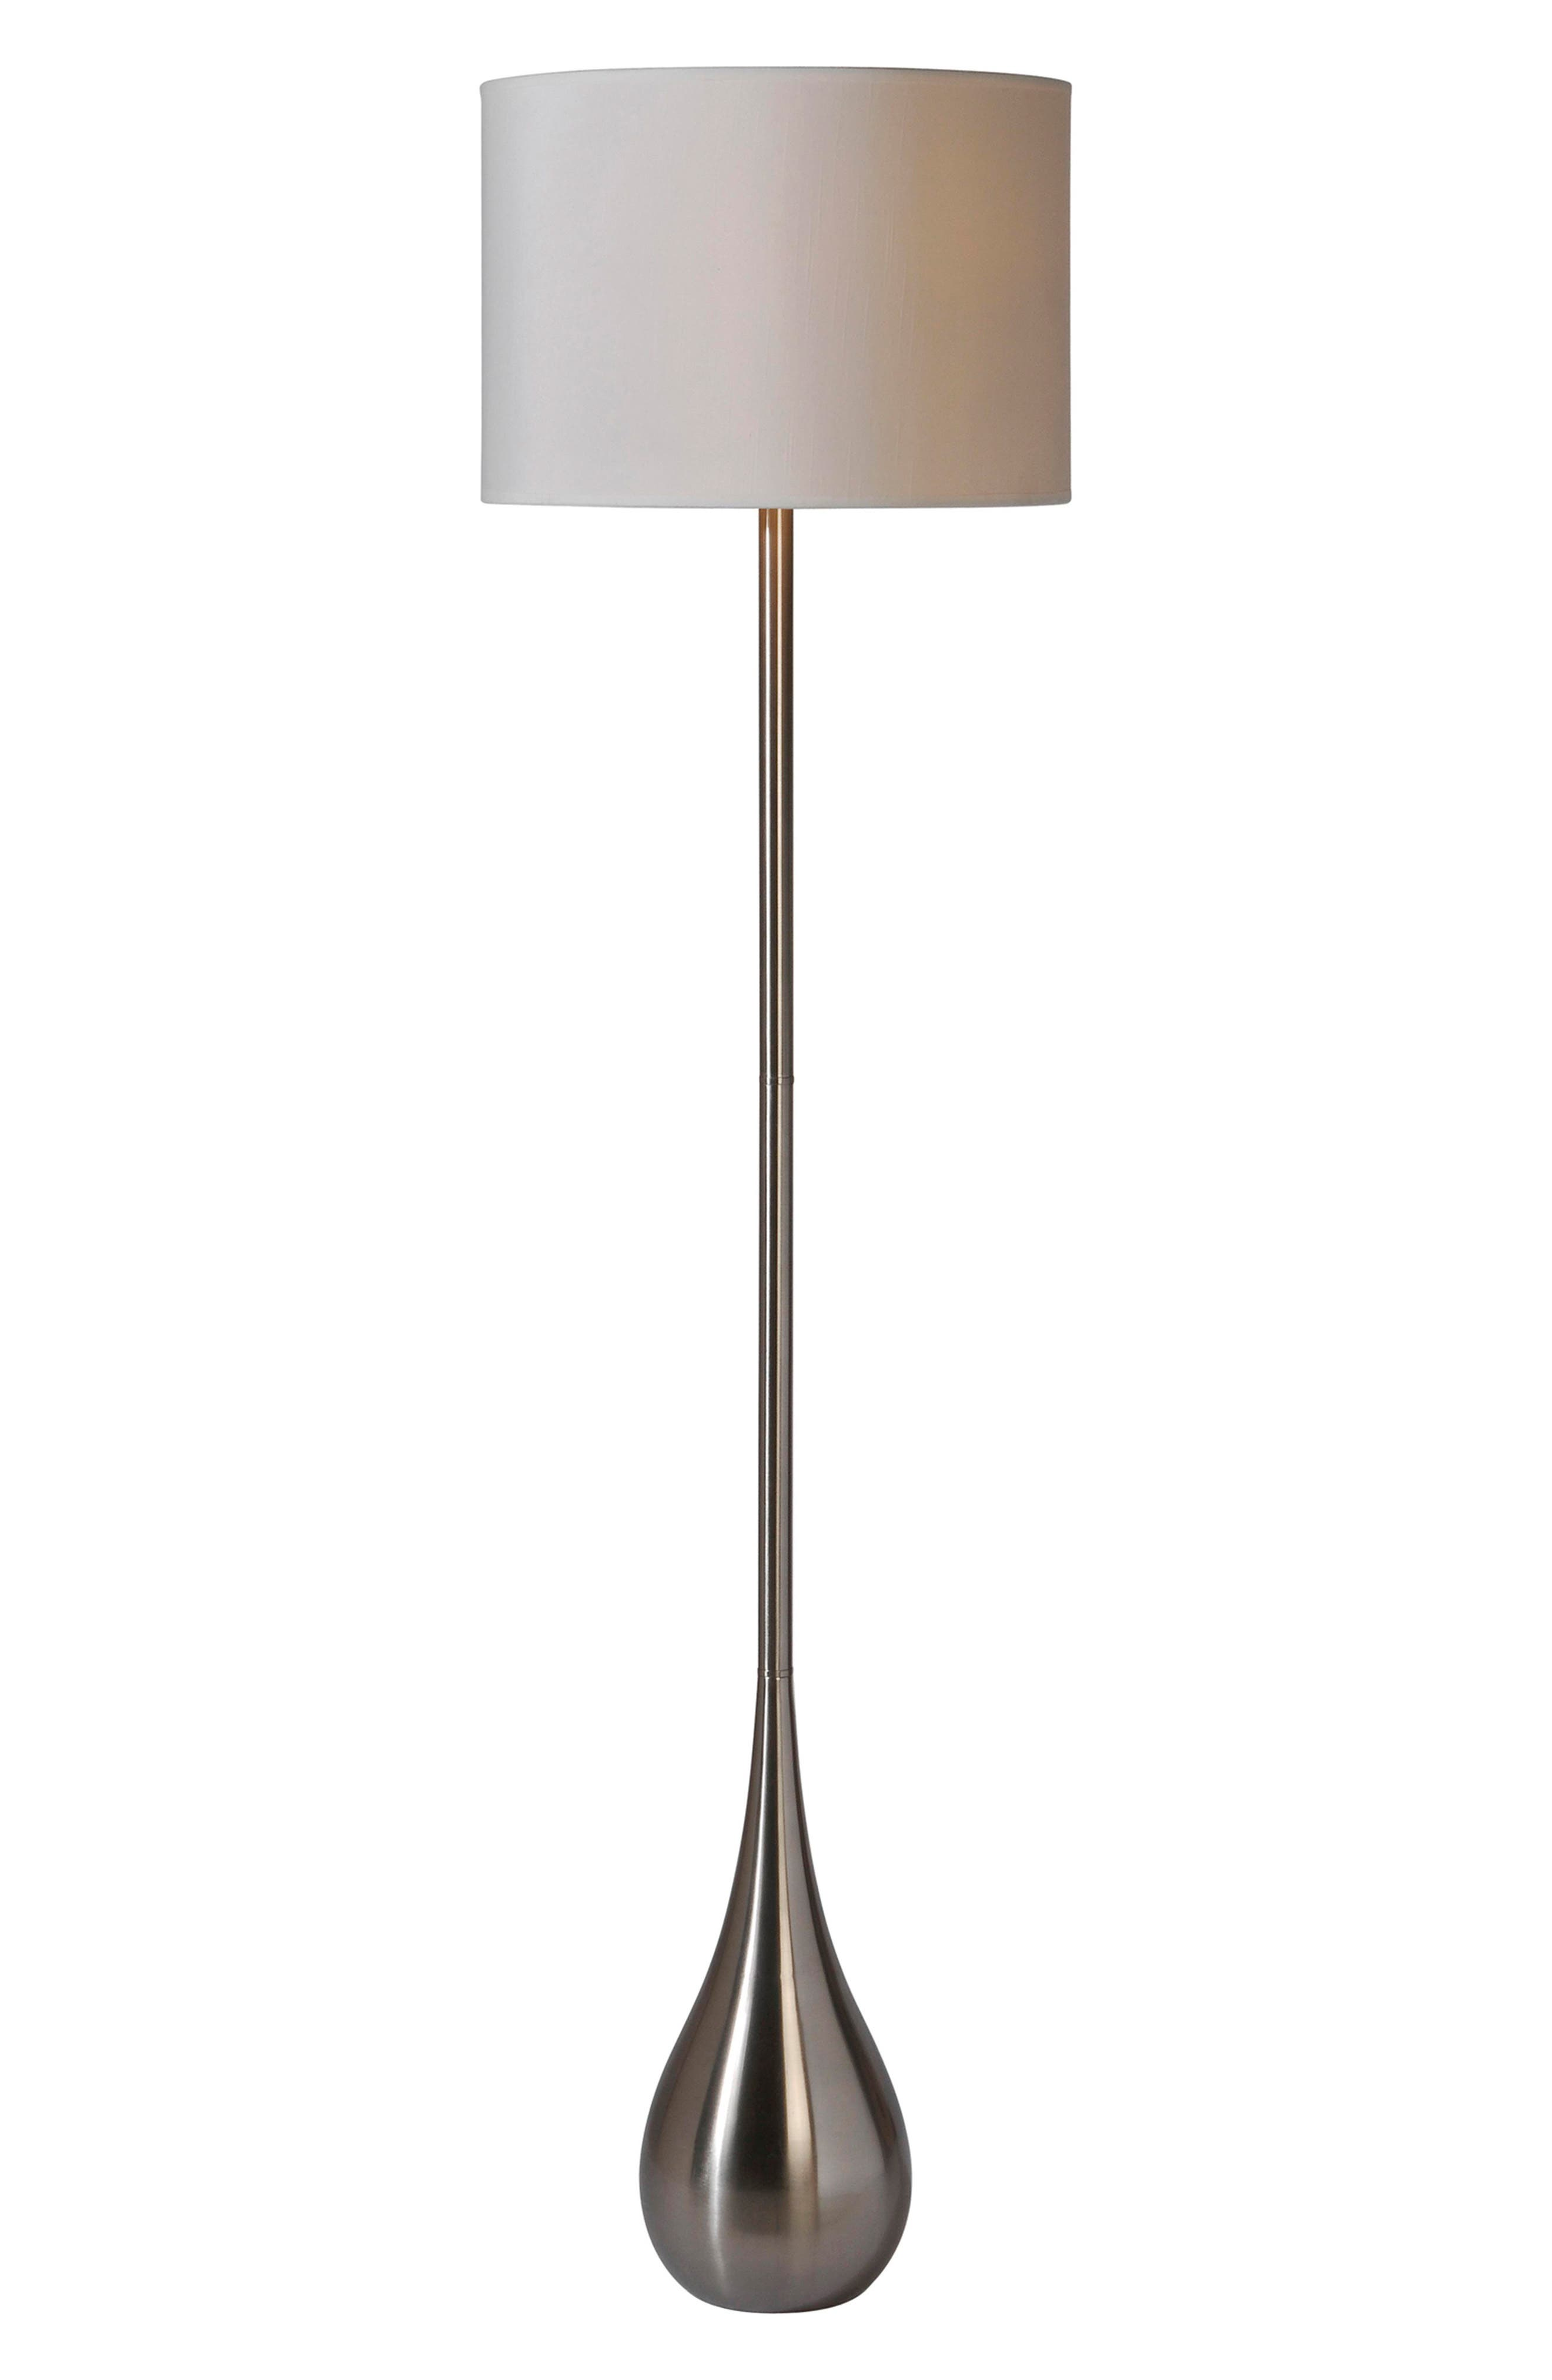 Satin Nickel Floor Lamp,                             Main thumbnail 1, color,                             Satin Nickel